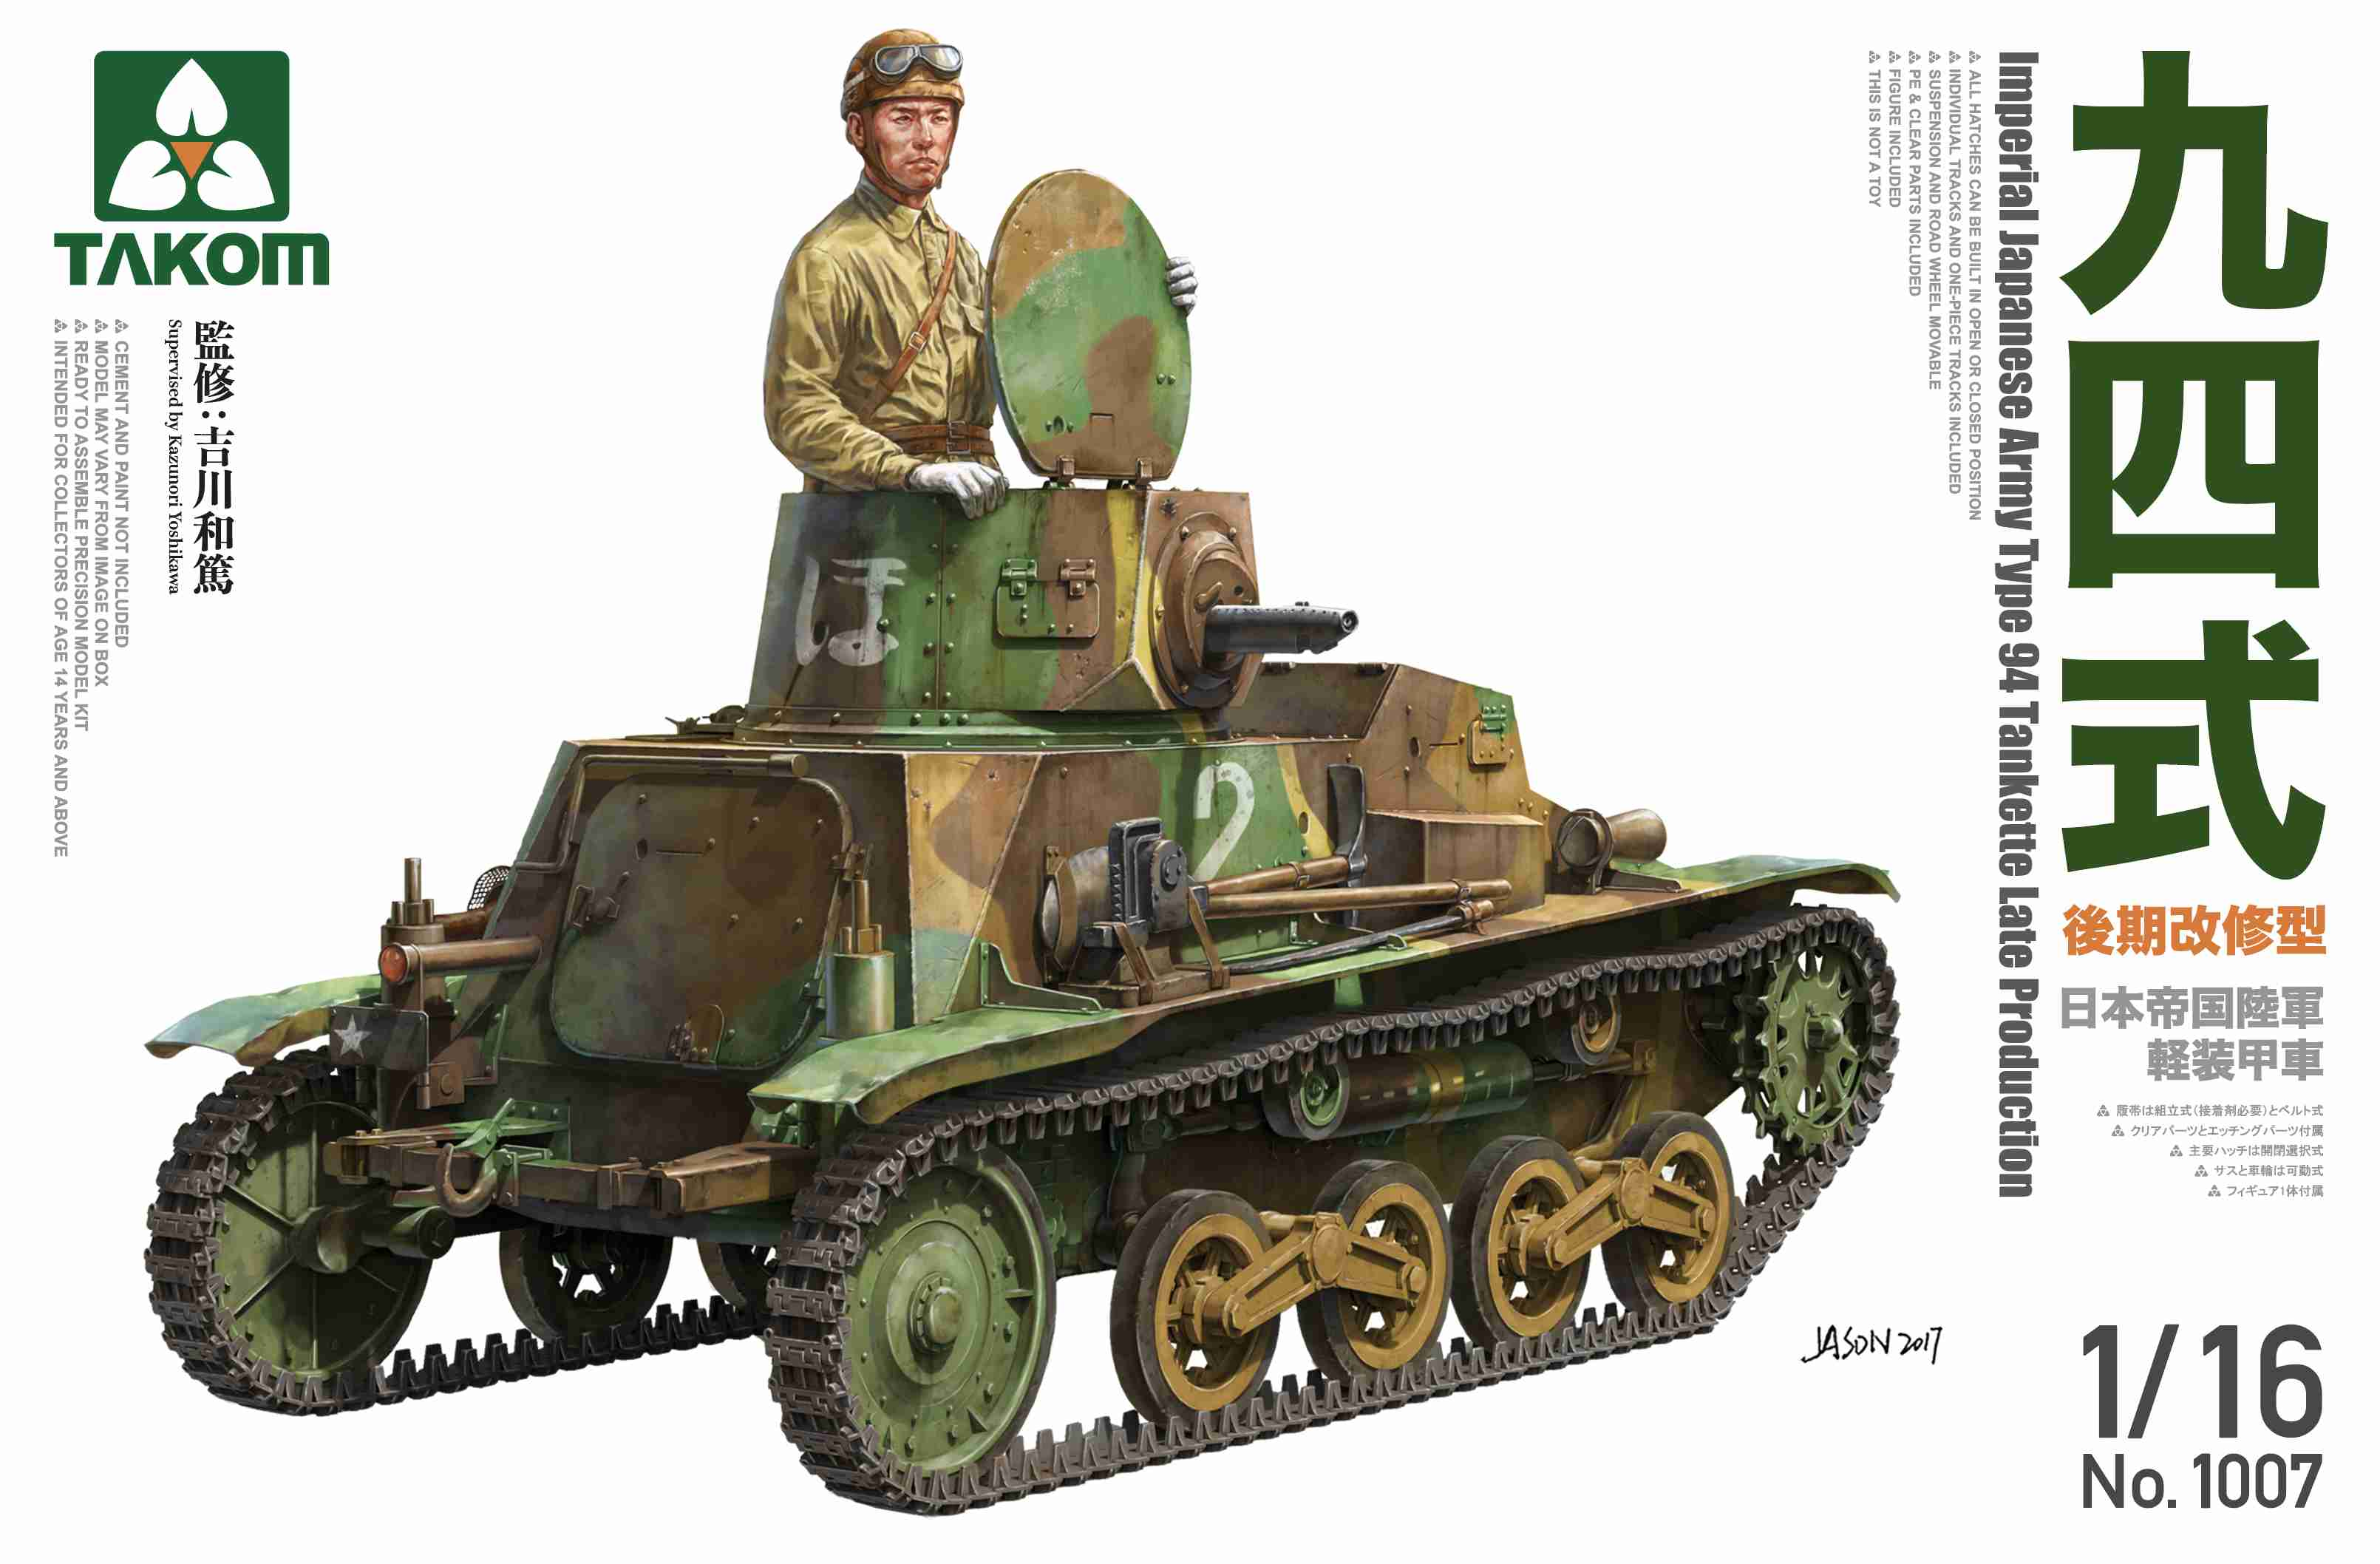 Takom 1005 WWII Imperial Japanese Army Tank Commander 1//16 Scale Model Kit